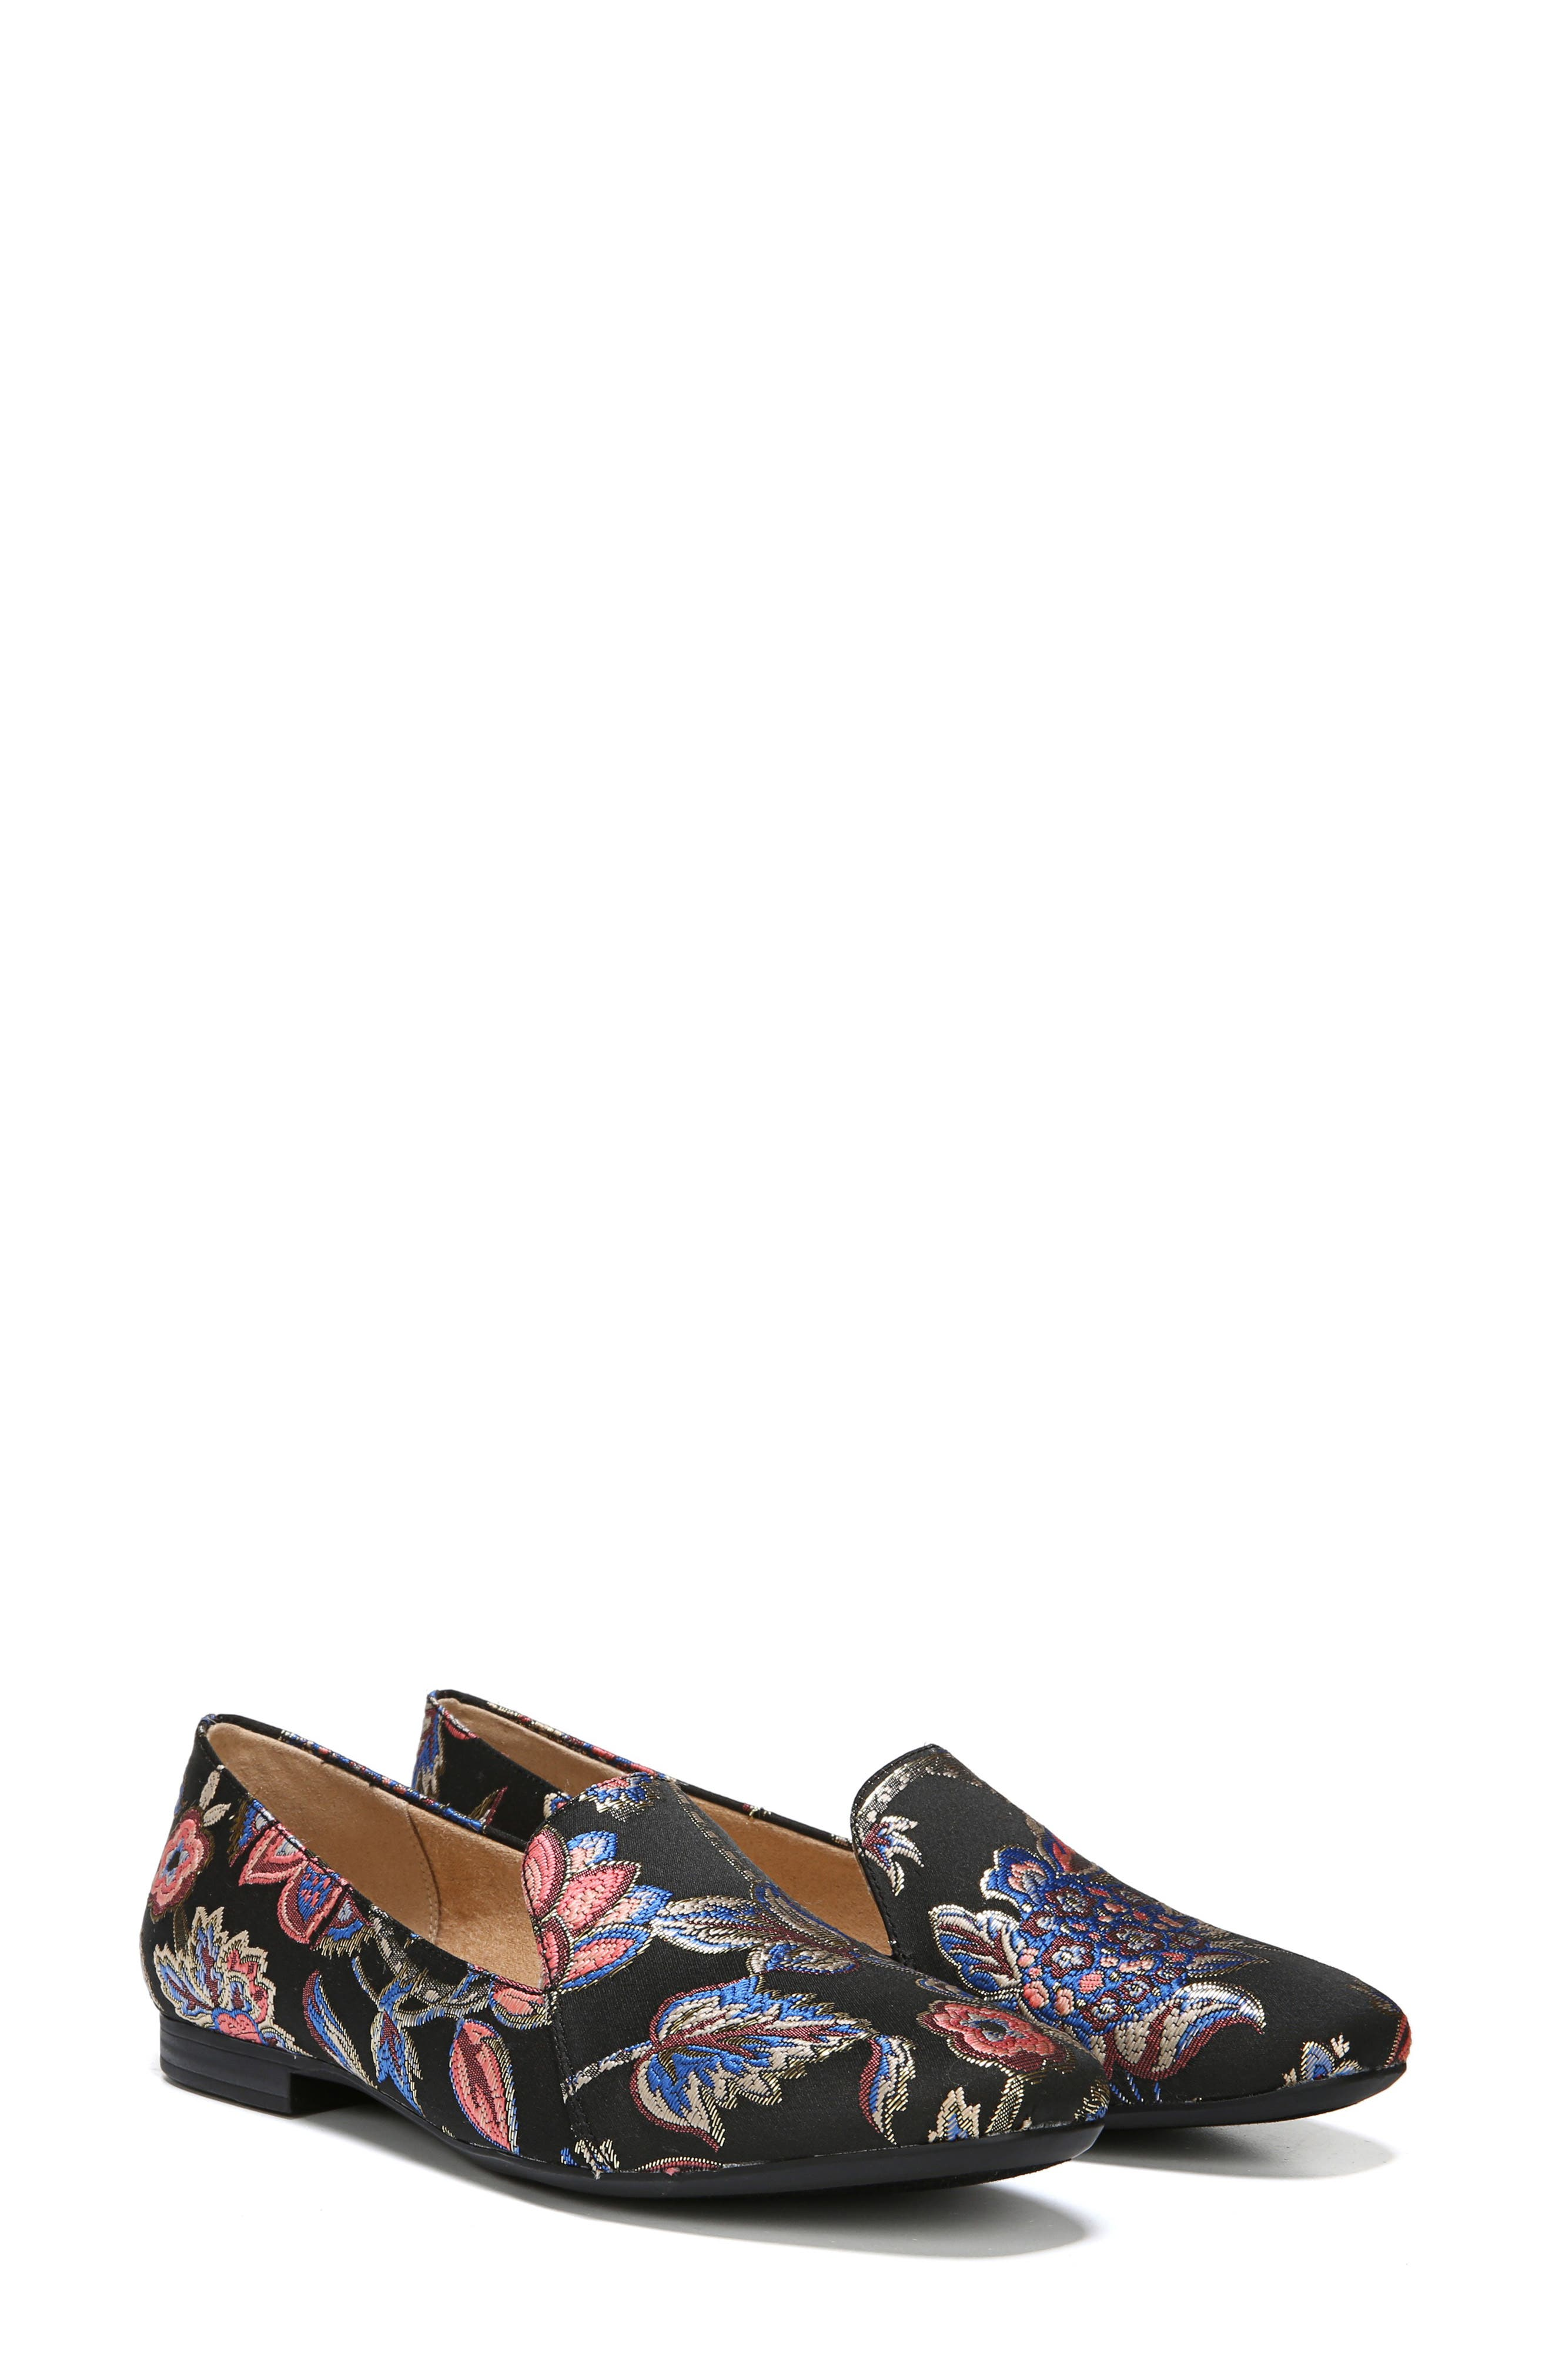 NATURALIZER, Emiline Flat Loafer, Alternate thumbnail 8, color, BROCADE